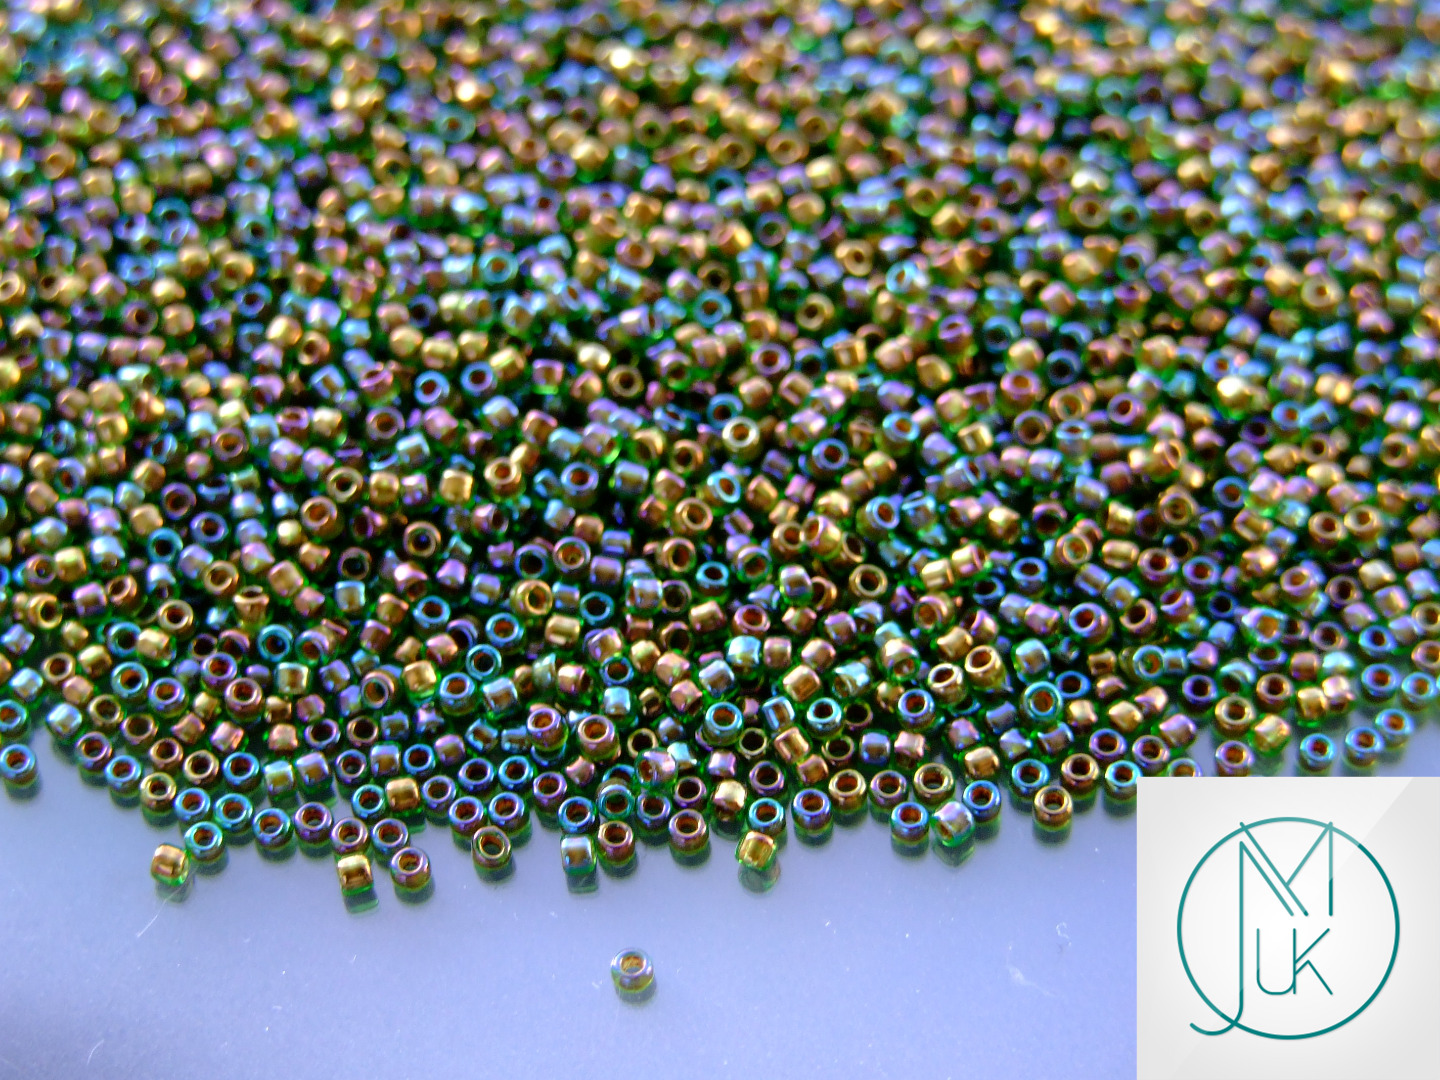 sold round gems s other per bead clear beads mountain tr glass package purple gram toho size shop seed and opaque bugle fire here lined rainbow rosaline pkg